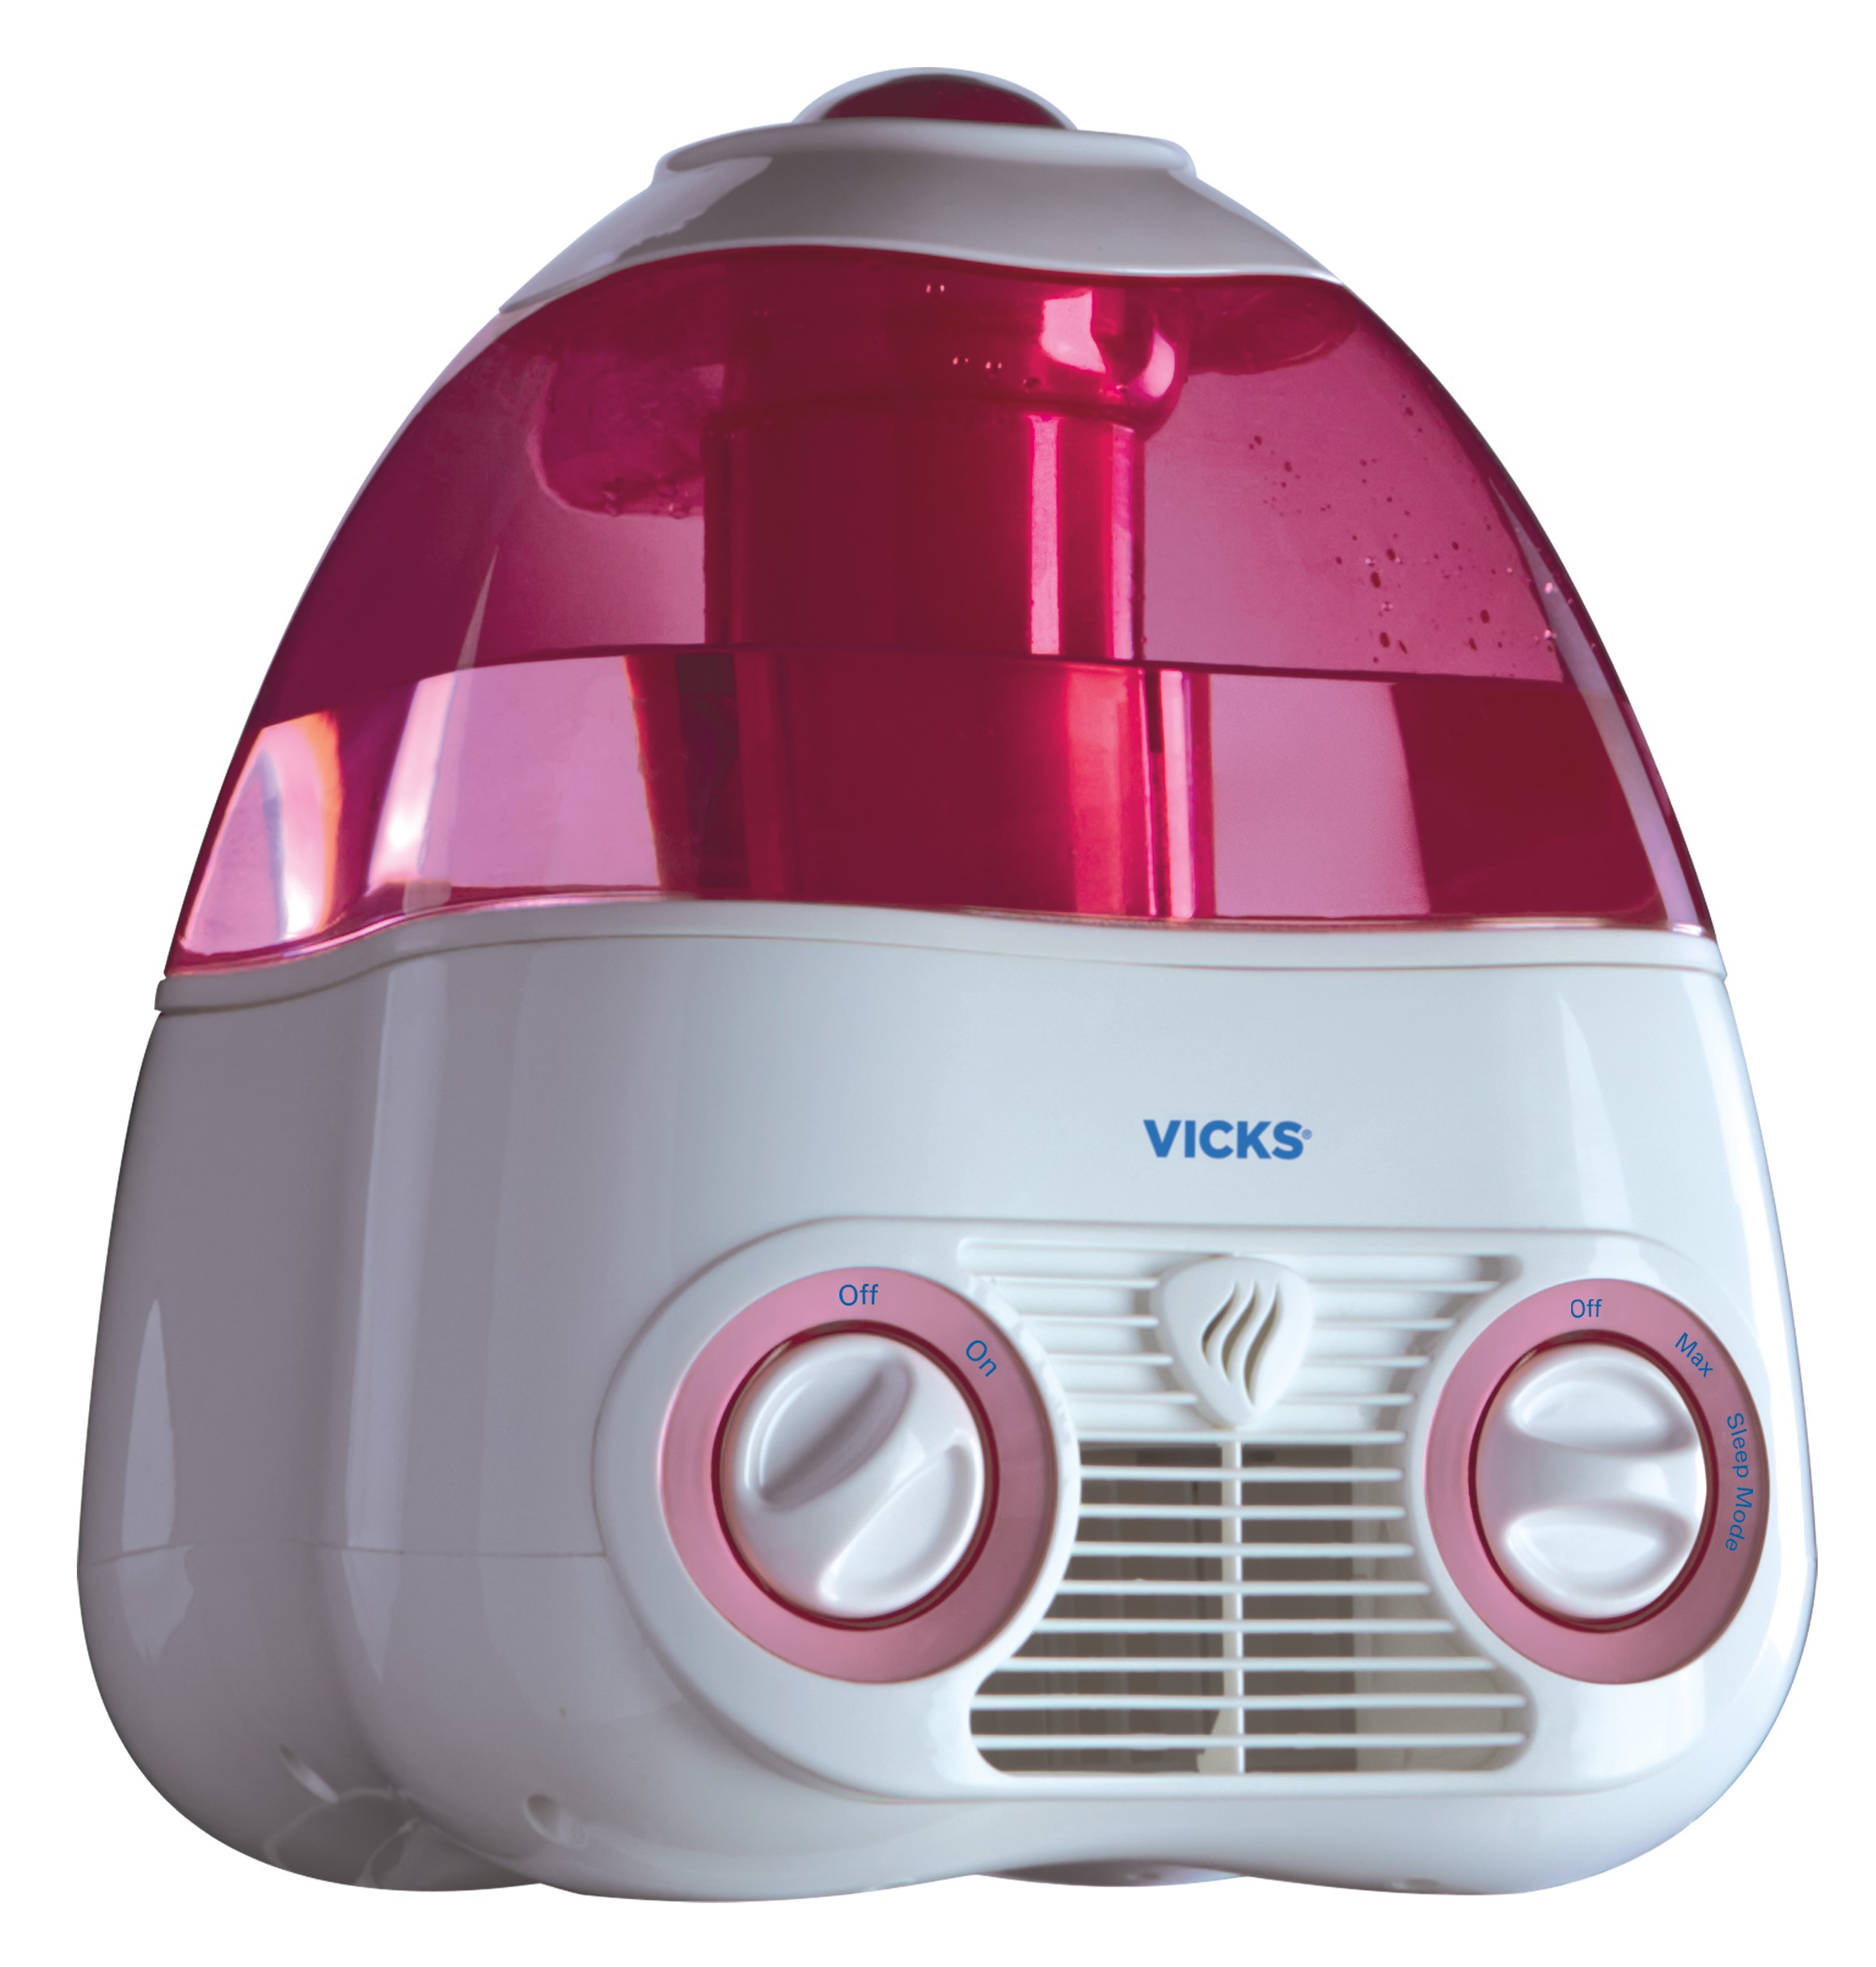 Vicks Starry Night Cool Moisture Humidifier V3700M, Pink